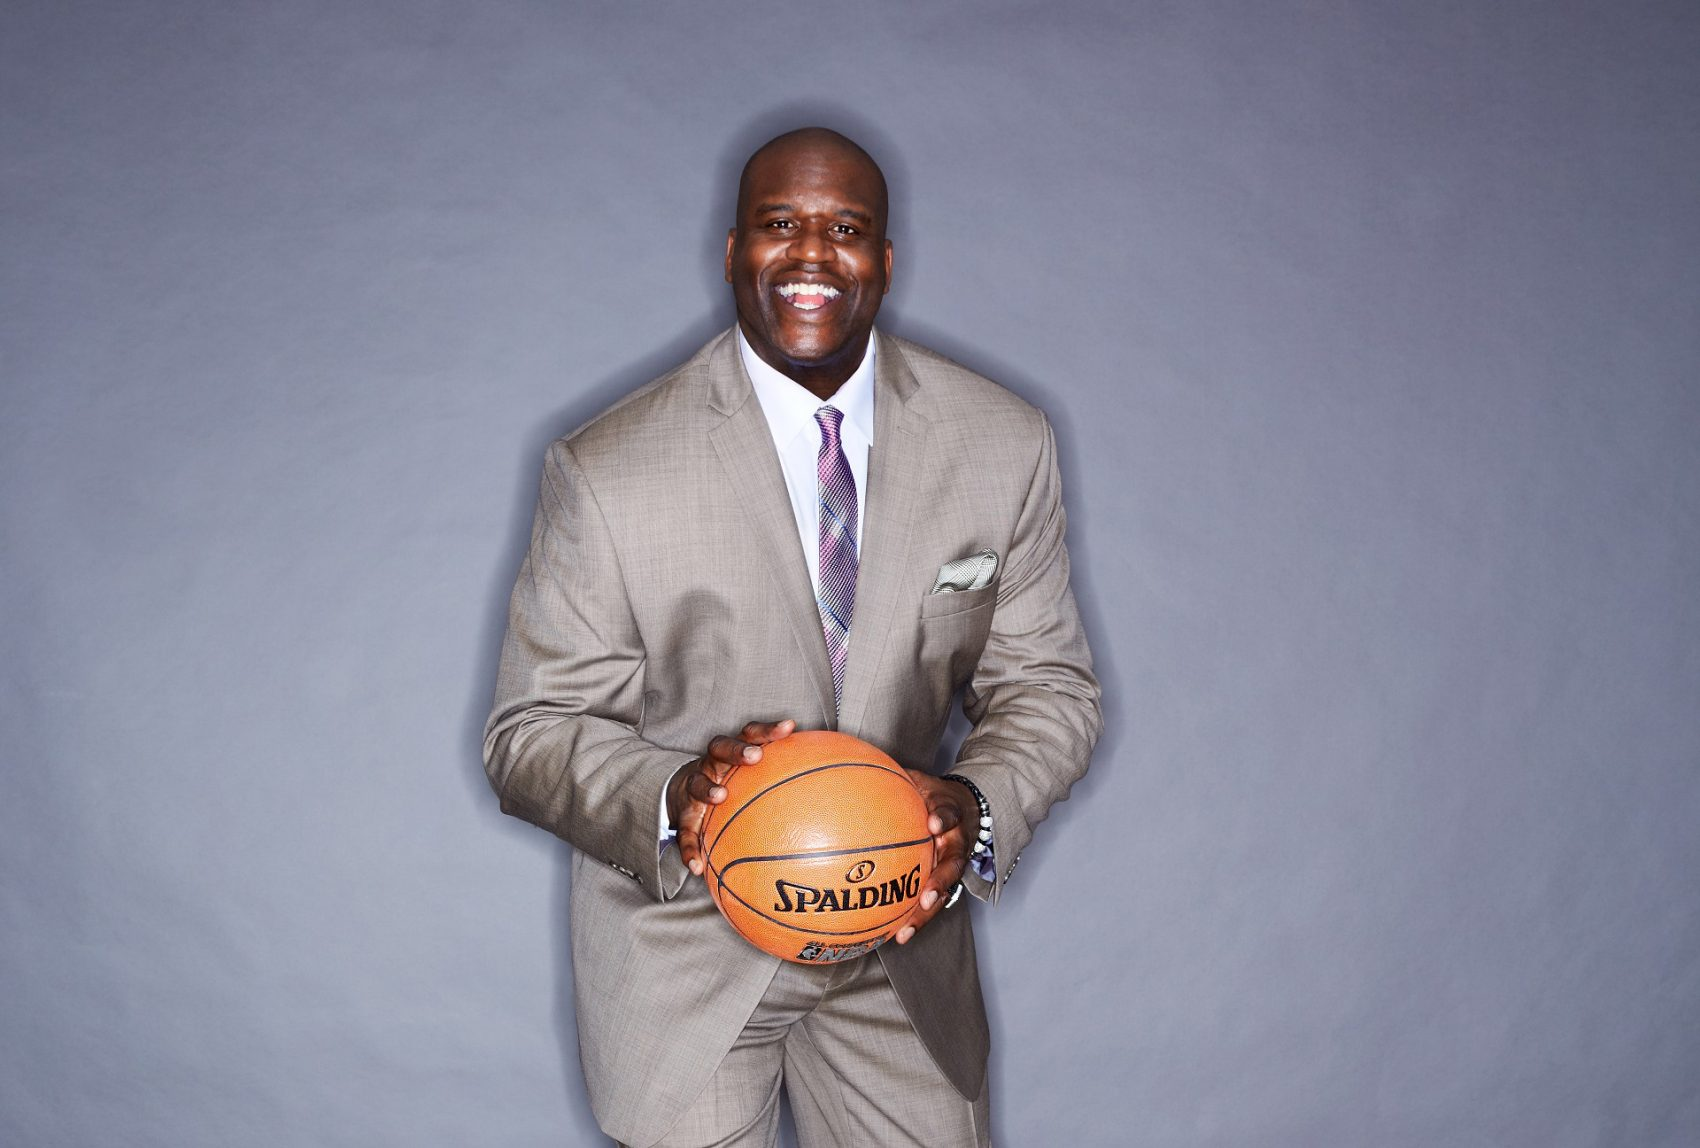 Meet Shaquille O Neal Children S Book Author Only A Game